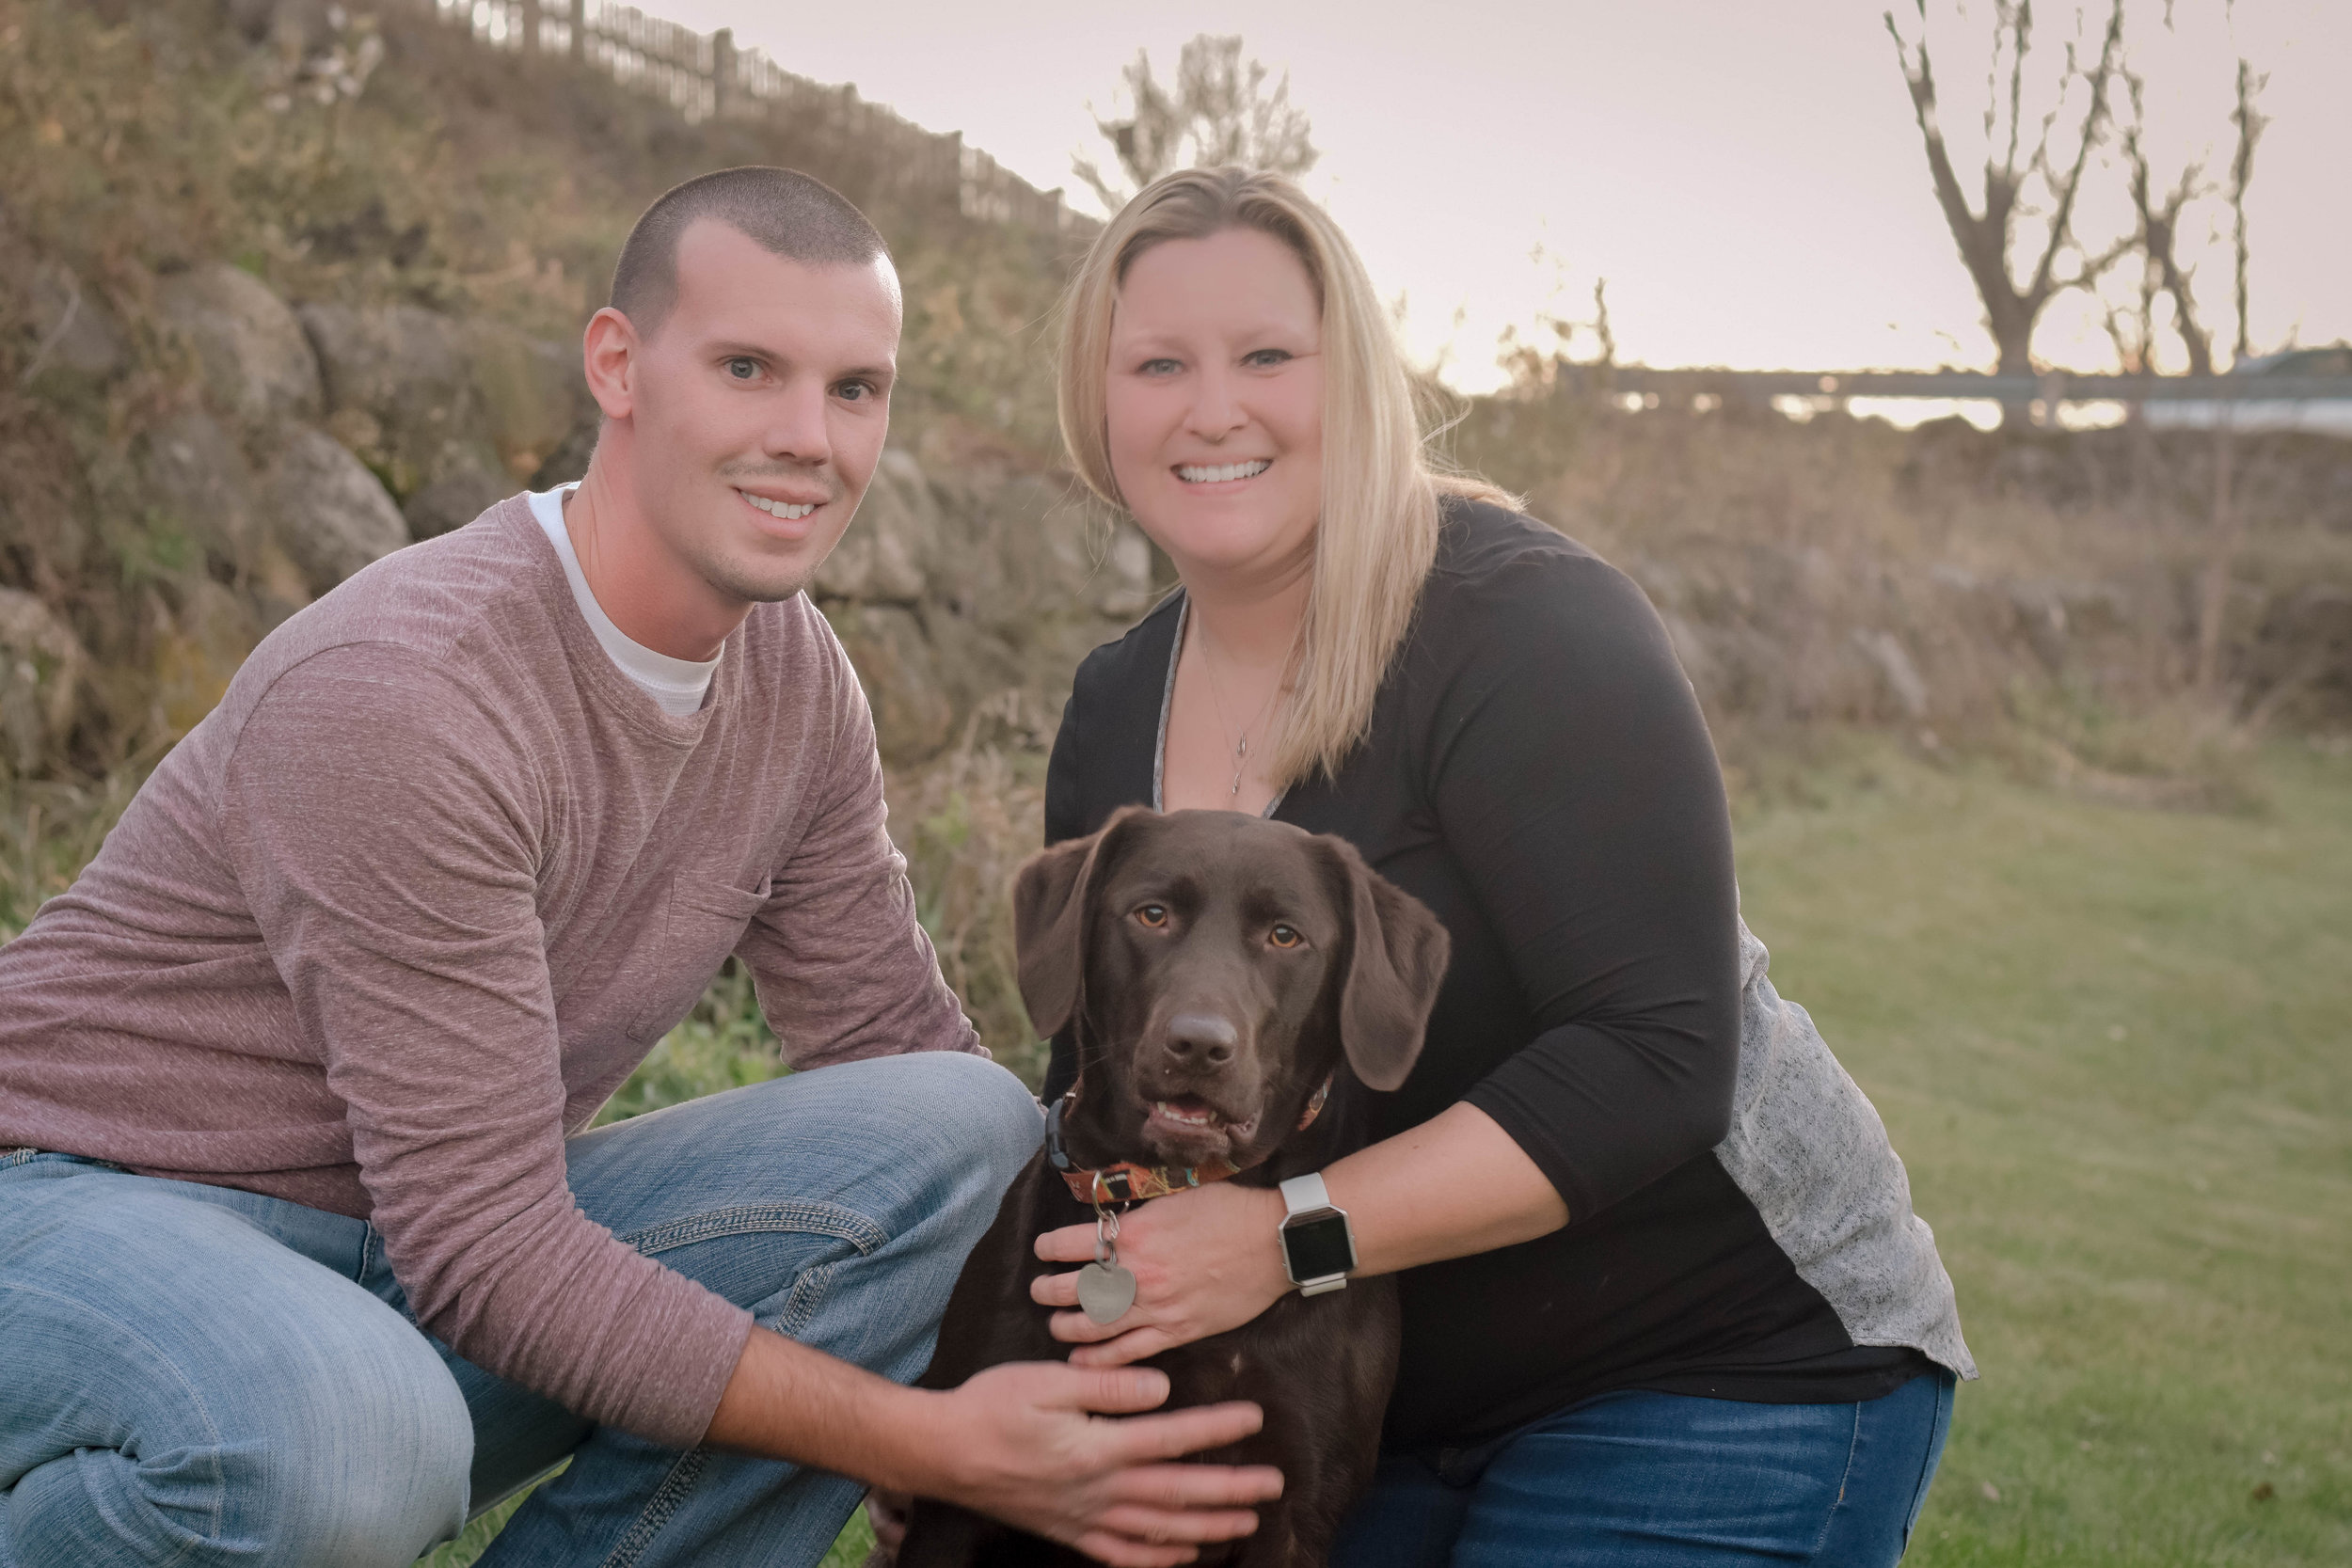 Christmas card photo with our dog, benelli